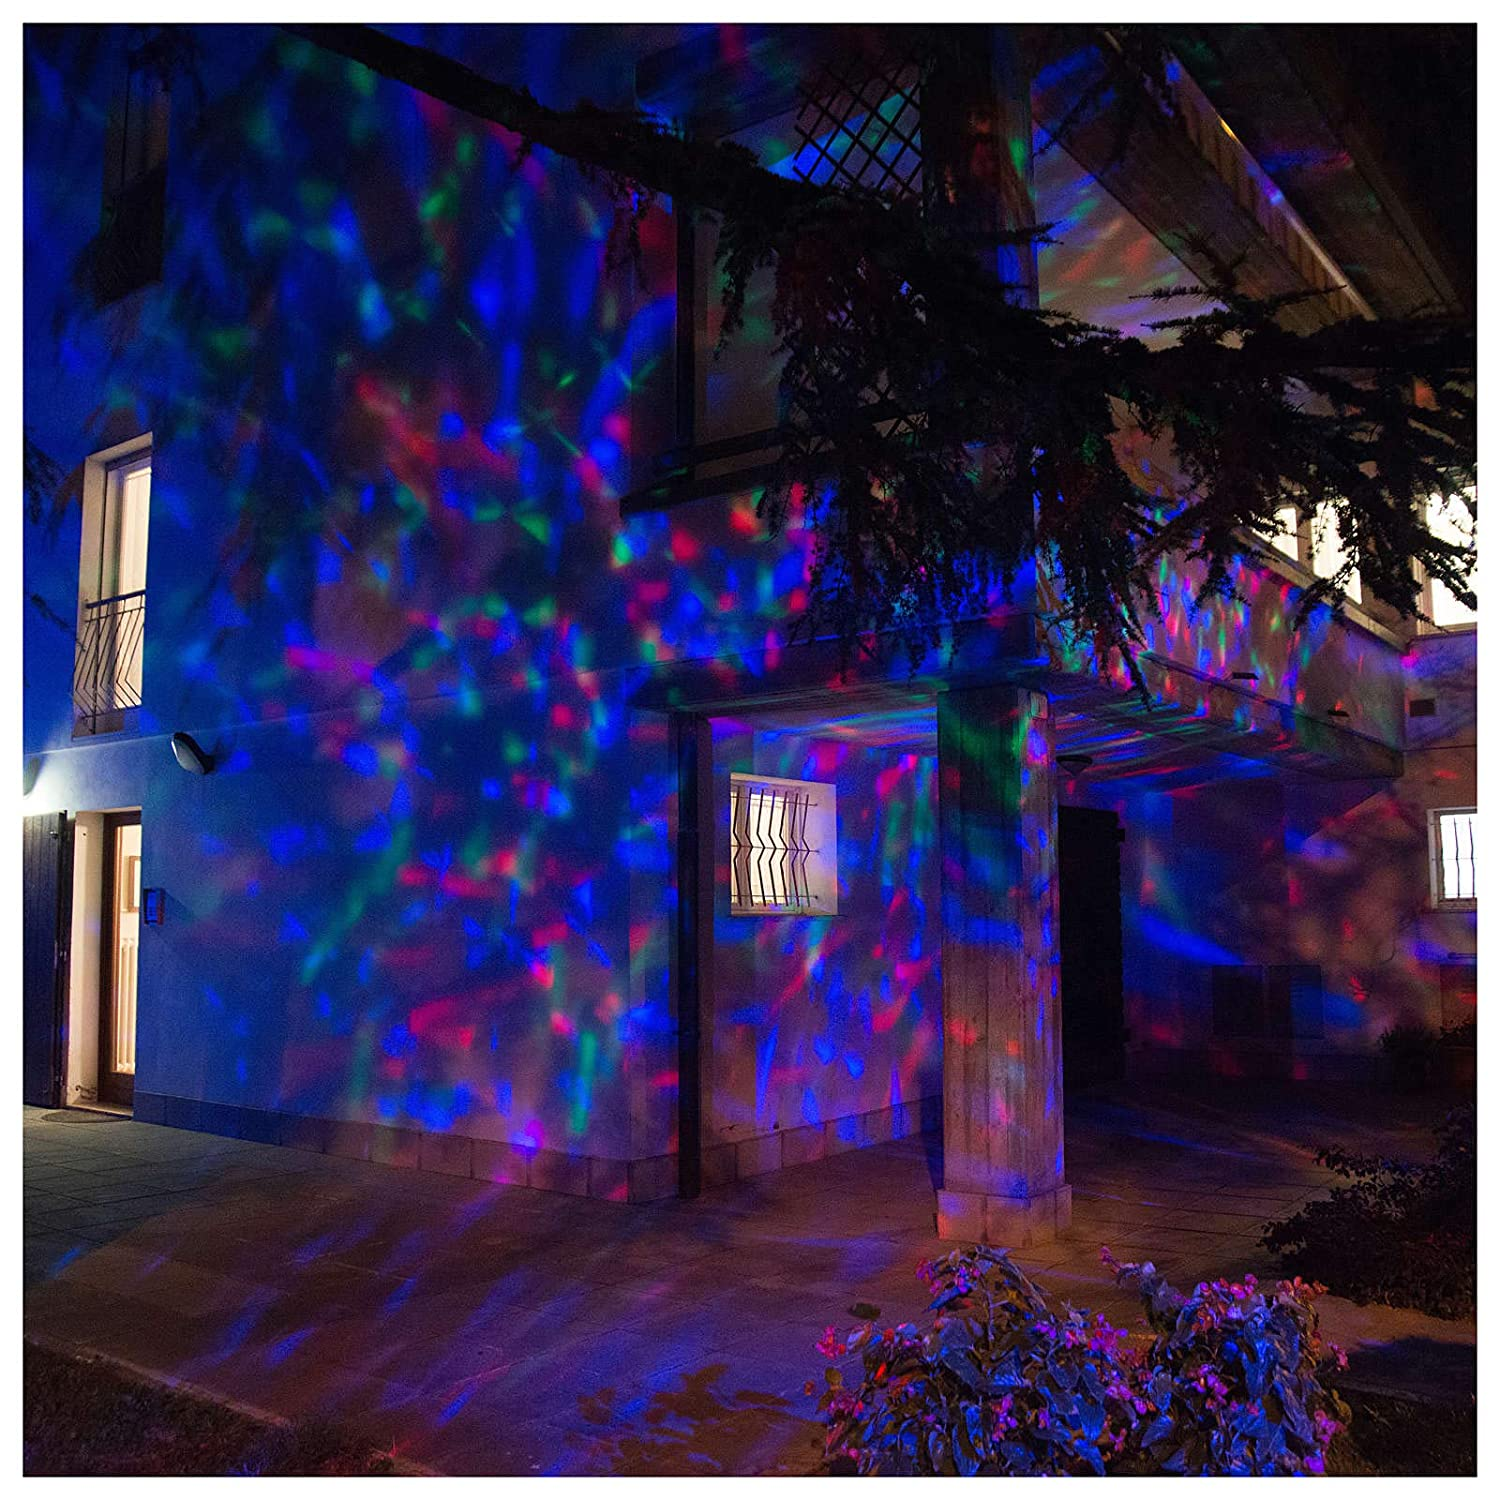 Holyart Proyector 3 Luces LED Olas Efecto Agua Multicolor Interior ...